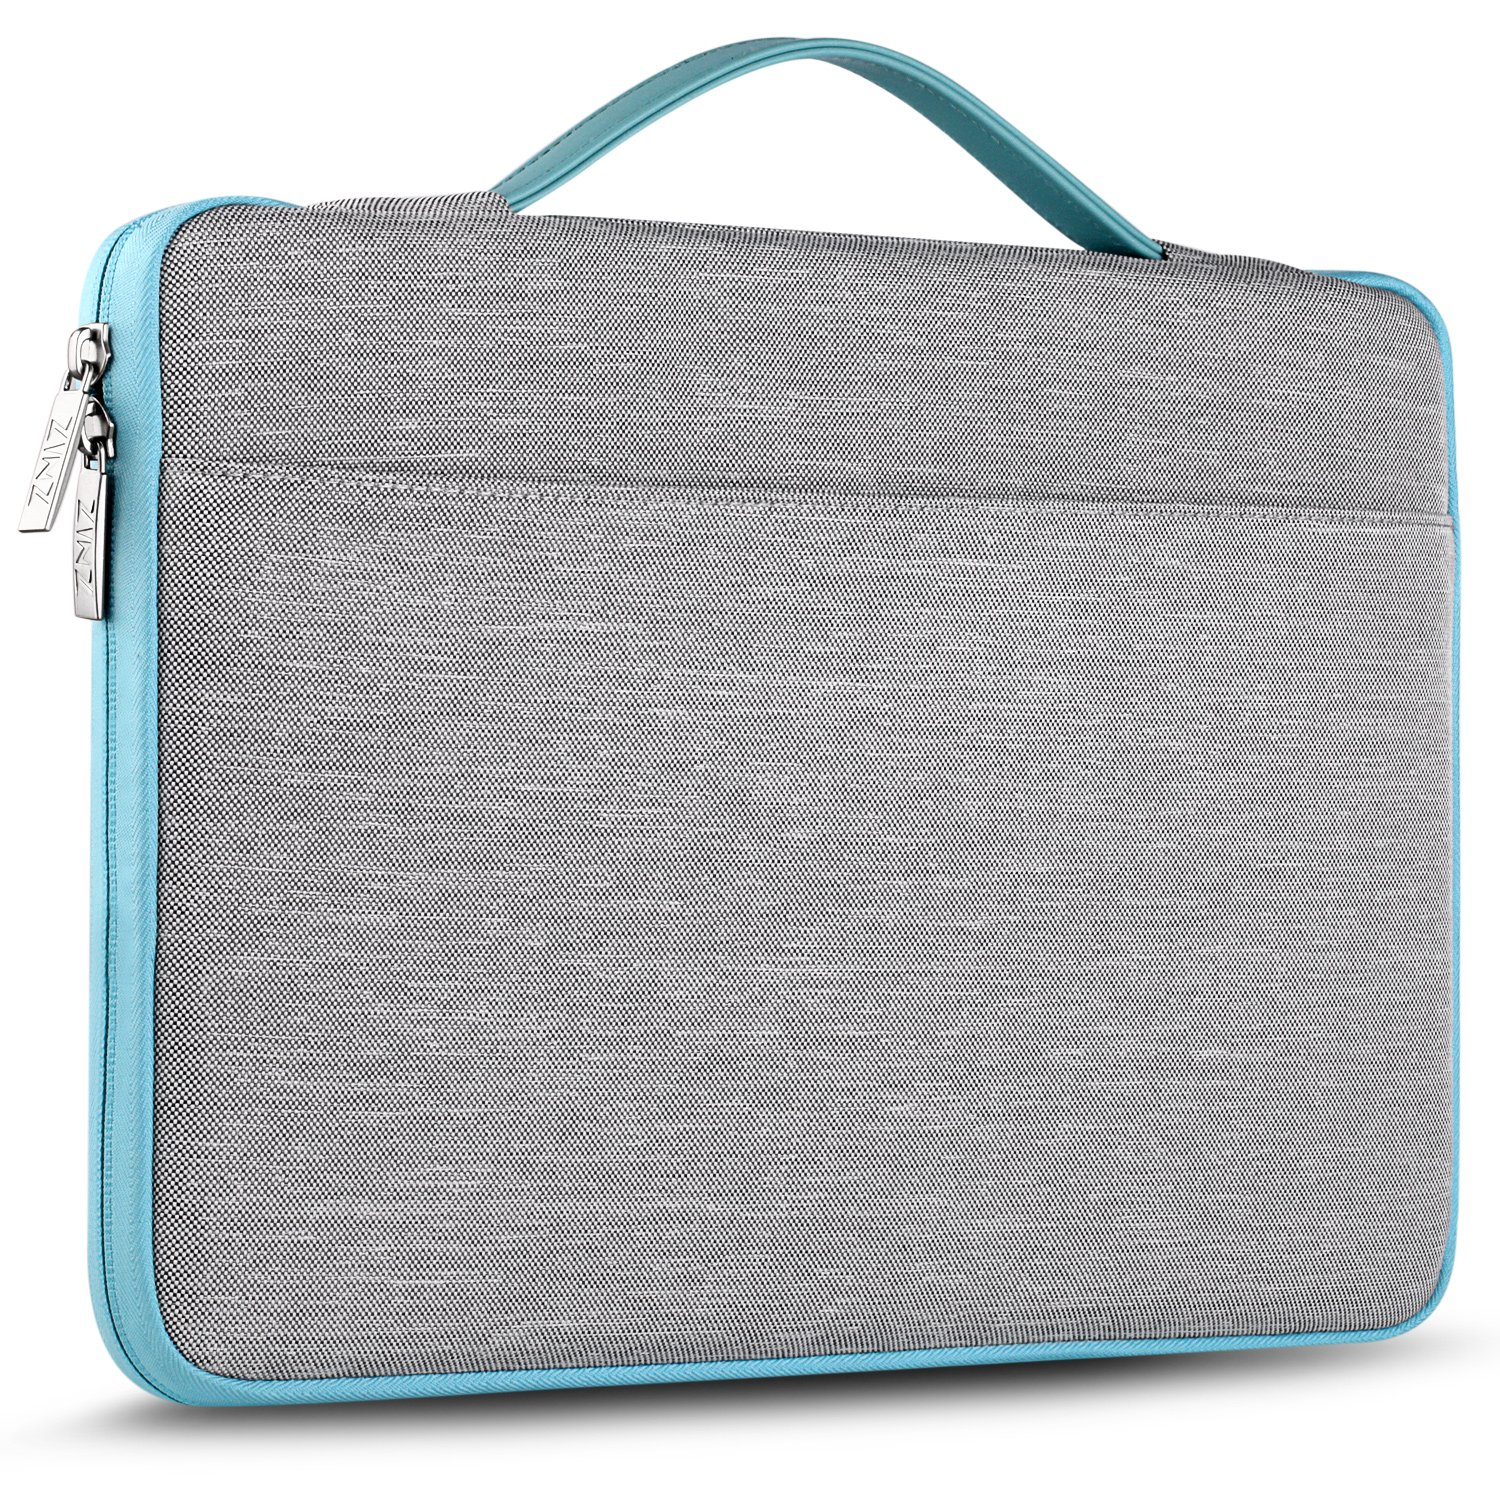 "ZINZ 13 Inch Laptop Sleeve, Compatible 2018 New MacBook Air Retina A1932 | MacBook Pro 13 Inch A1706 / A1708 | Surface Pro 6 and More 13-14"" Notebook Polyester Spill-Resistant Case Bag, Gray"